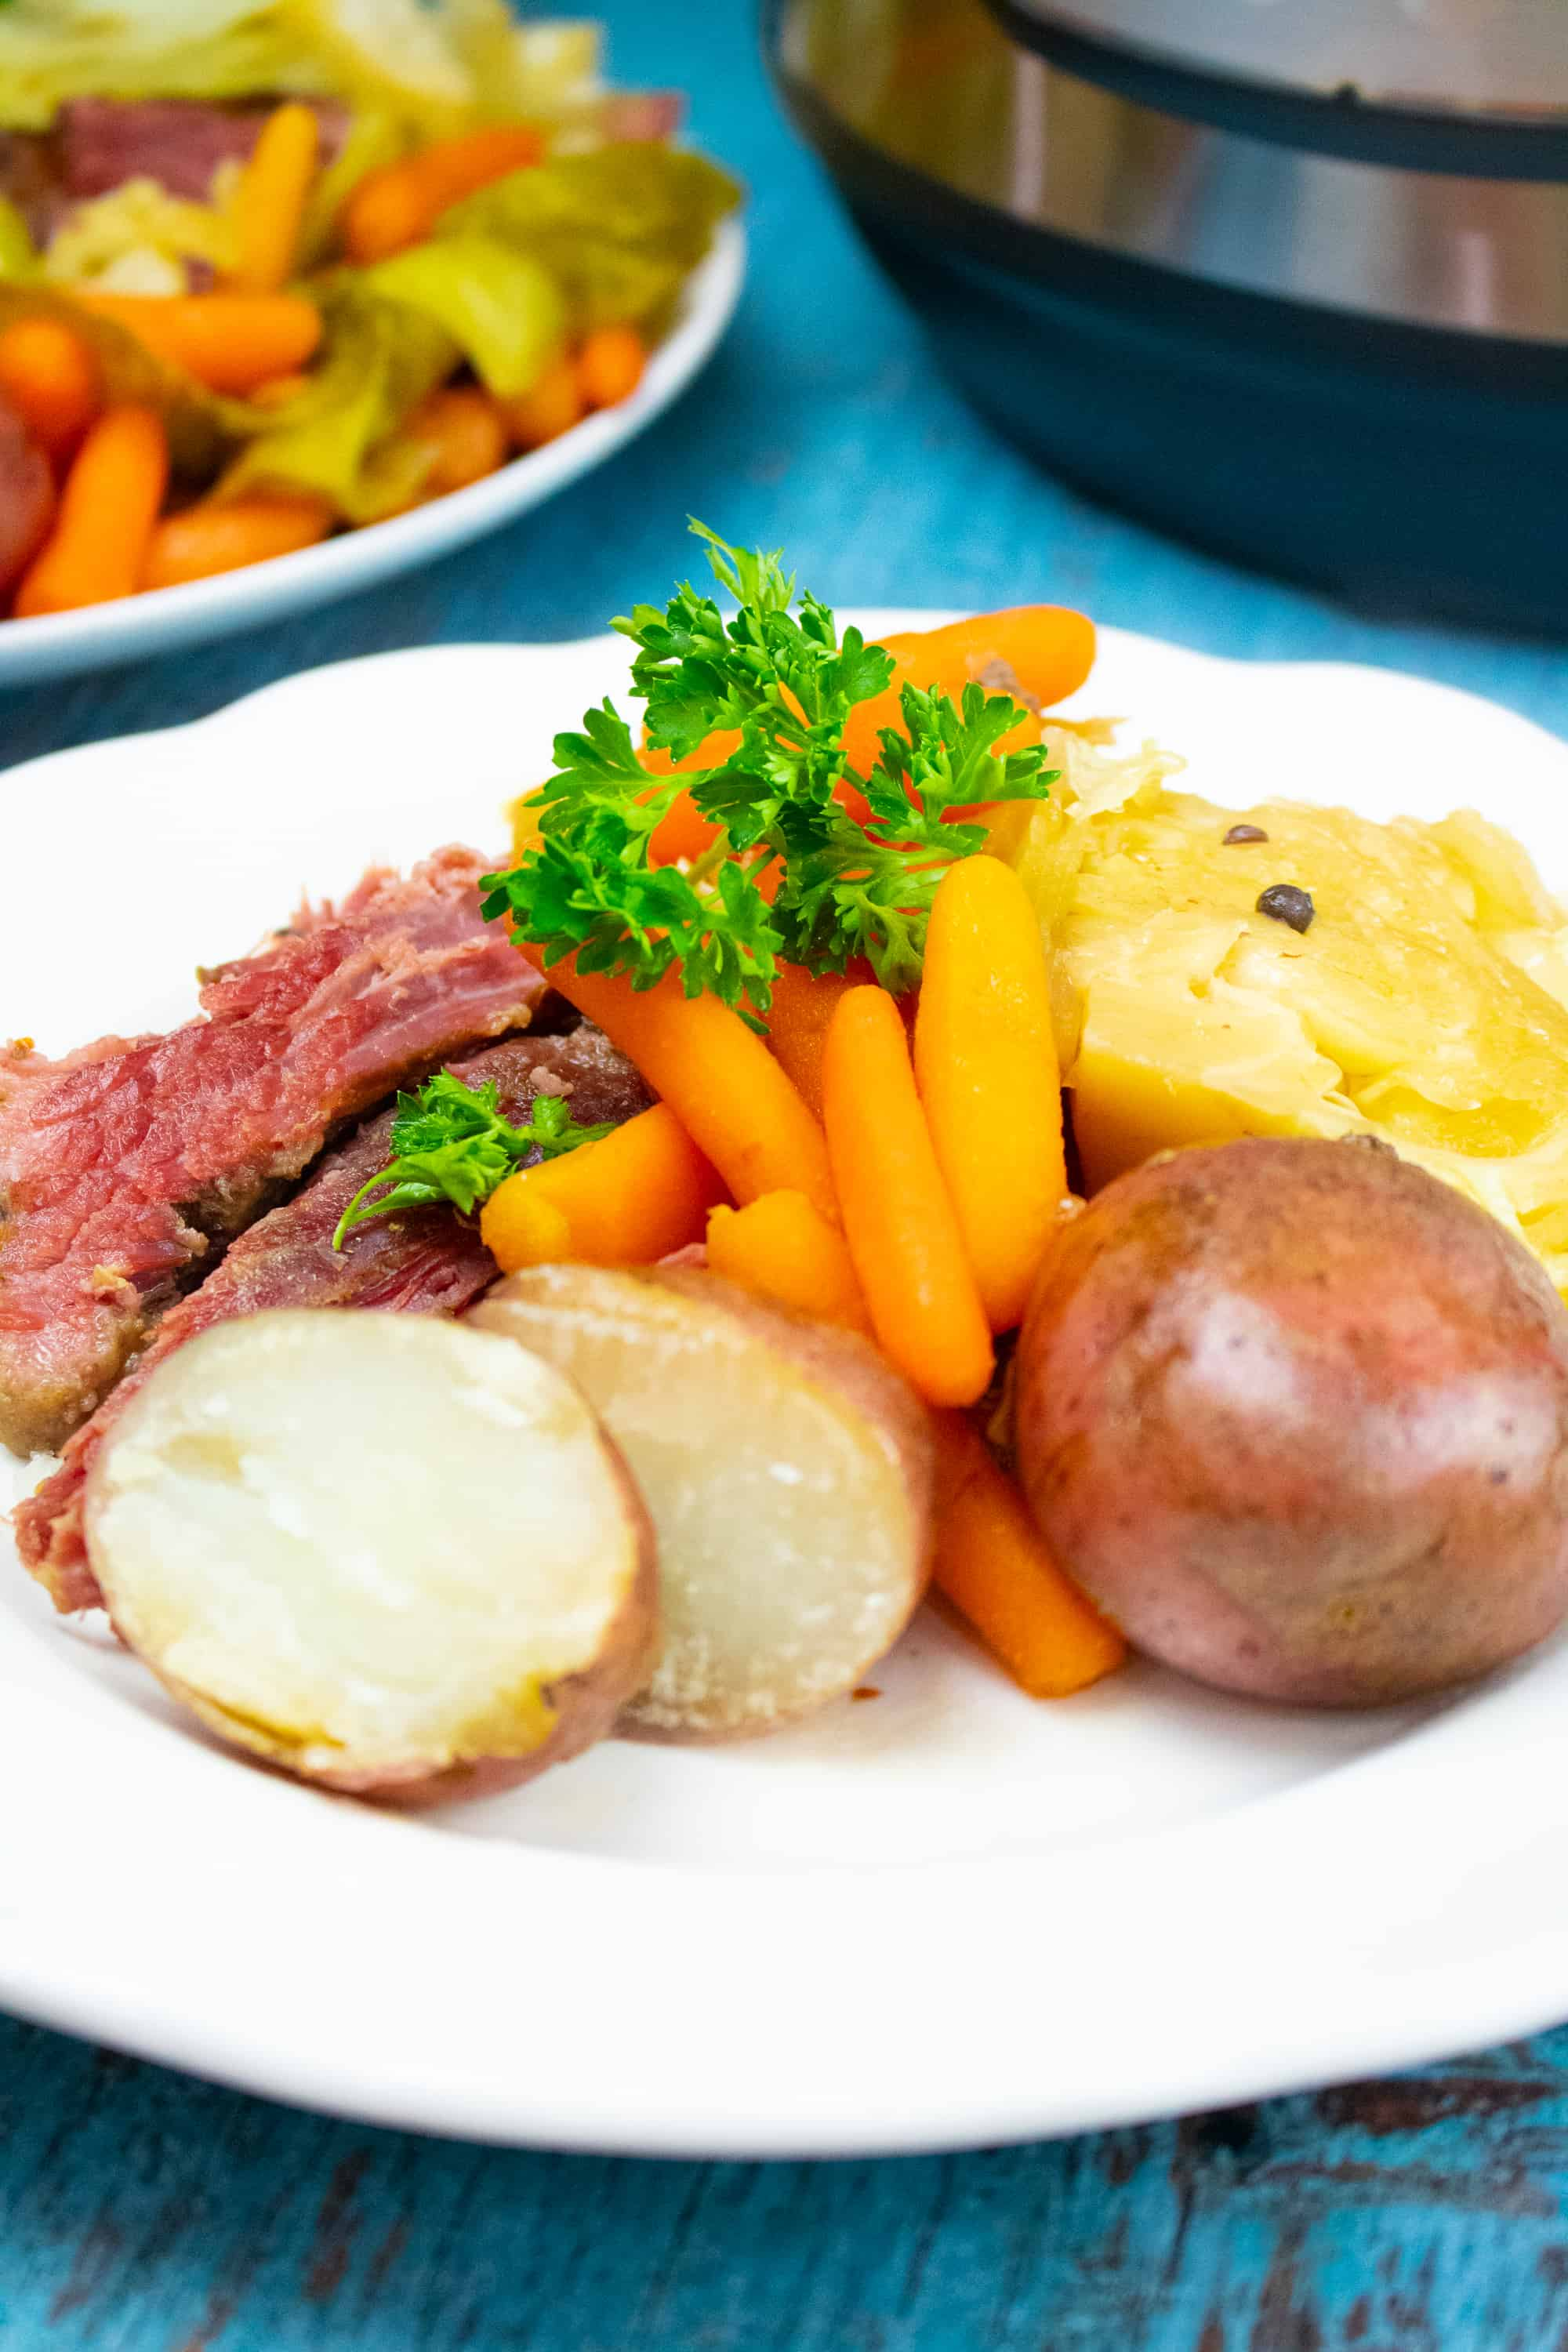 instant pot corned beef, potatoes, carrots and cabbage on white plate